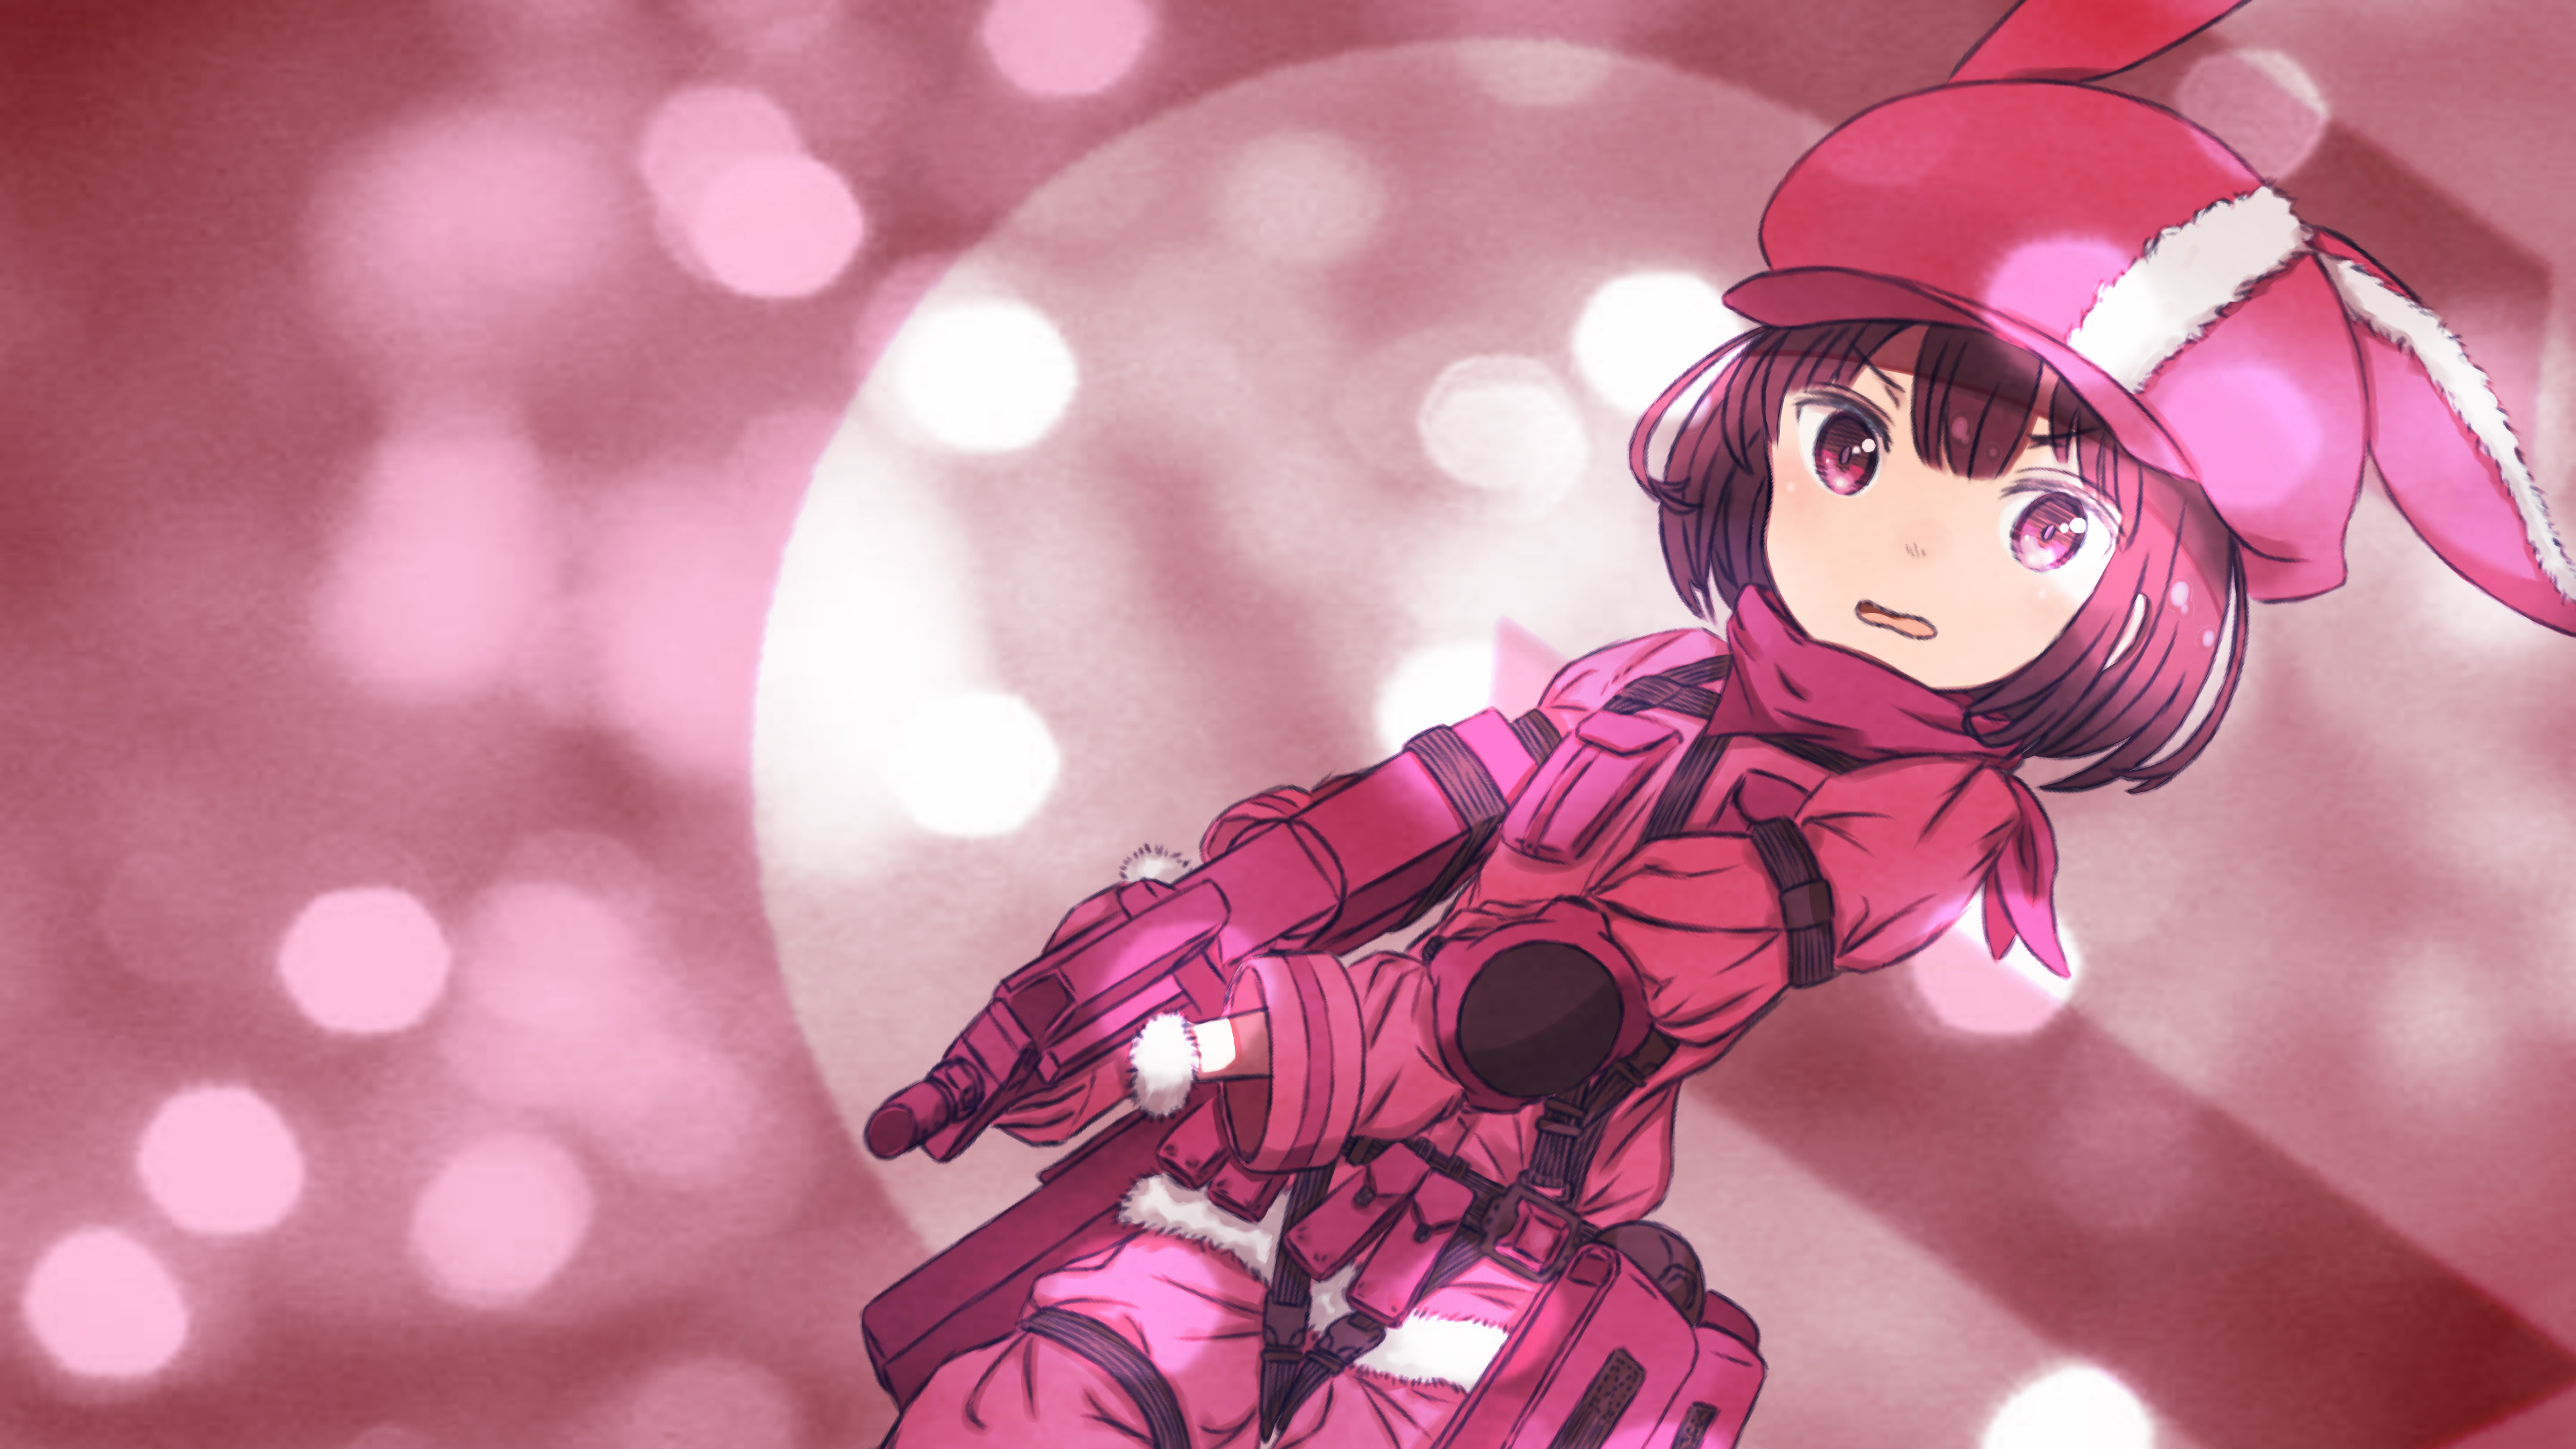 SAO Alternative Gun Gale Online wallpaper 39